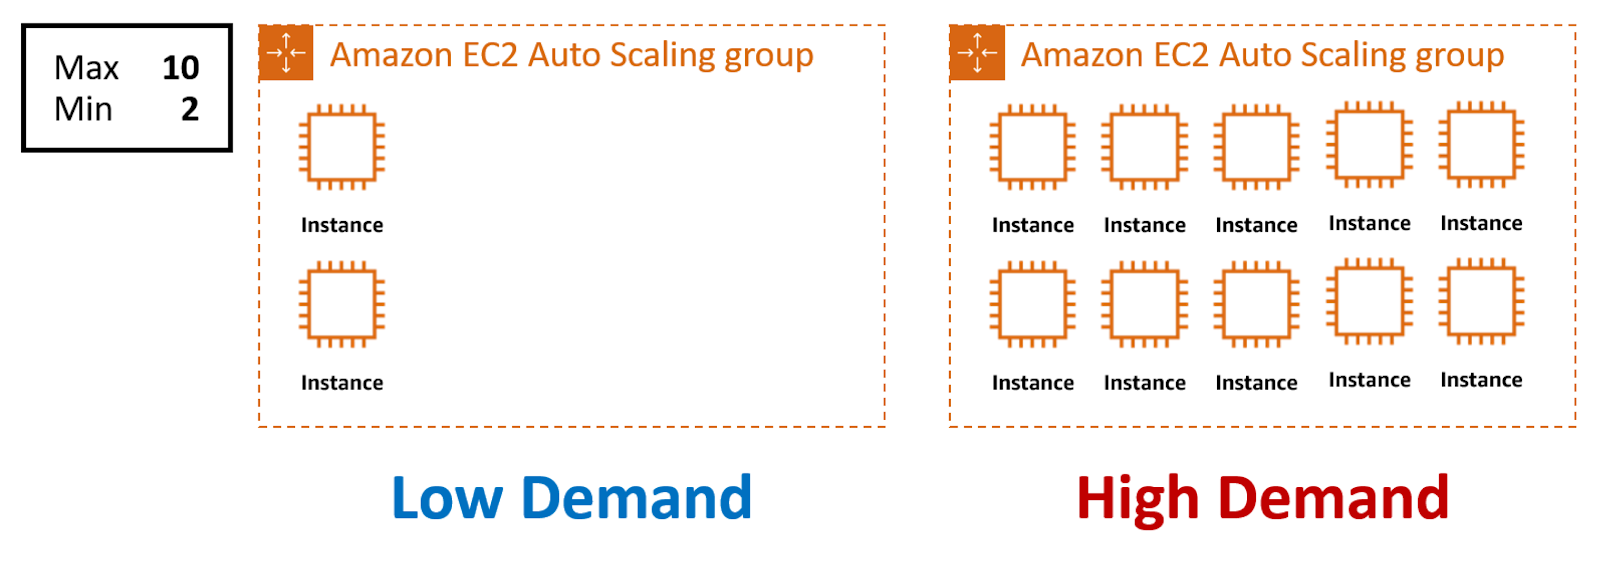 Amazon EC2 Auto Scaling group with maximum instances set to 10 and minimum set to 2. Low demand shows 2 instances provisioned, while high demand shows 10 instances.